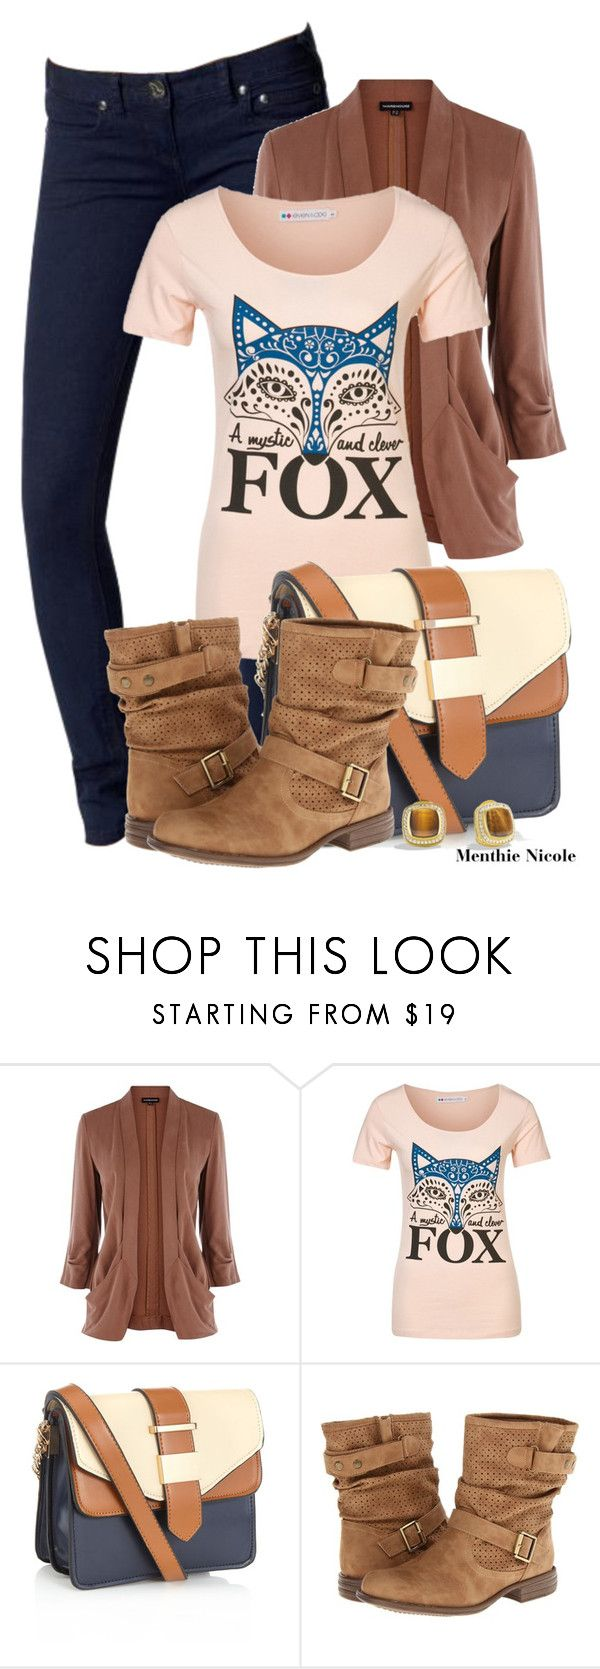 """""""This is Where it All Begins"""" by menthienicole ❤ liked on Polyvore featuring Free People, Warehouse, even&odd, Accessorize, Skechers and David Yurman"""